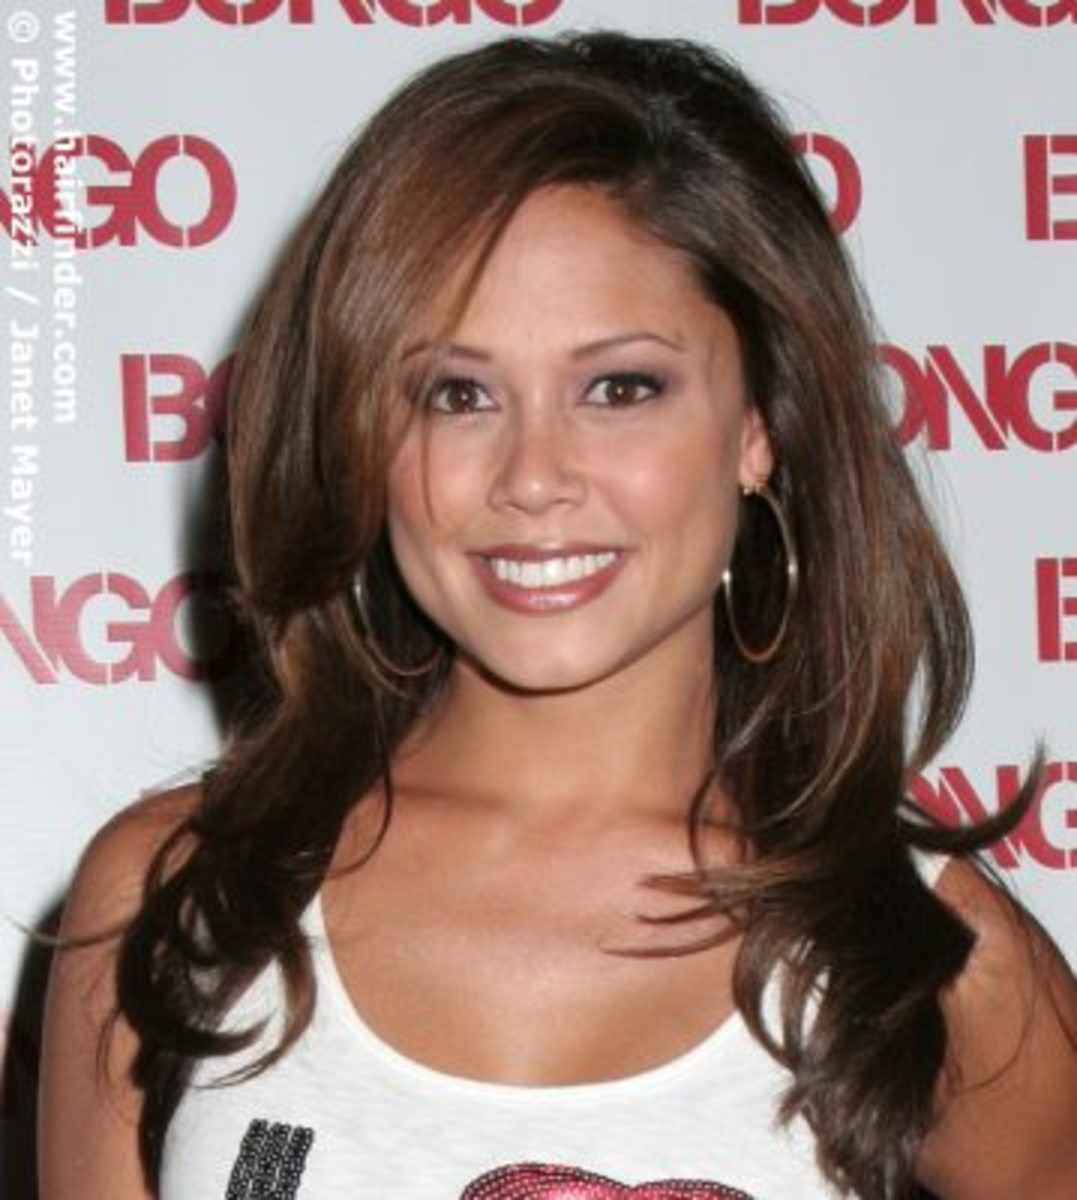 Vanessa Minnillo, Hot Pics and Vids